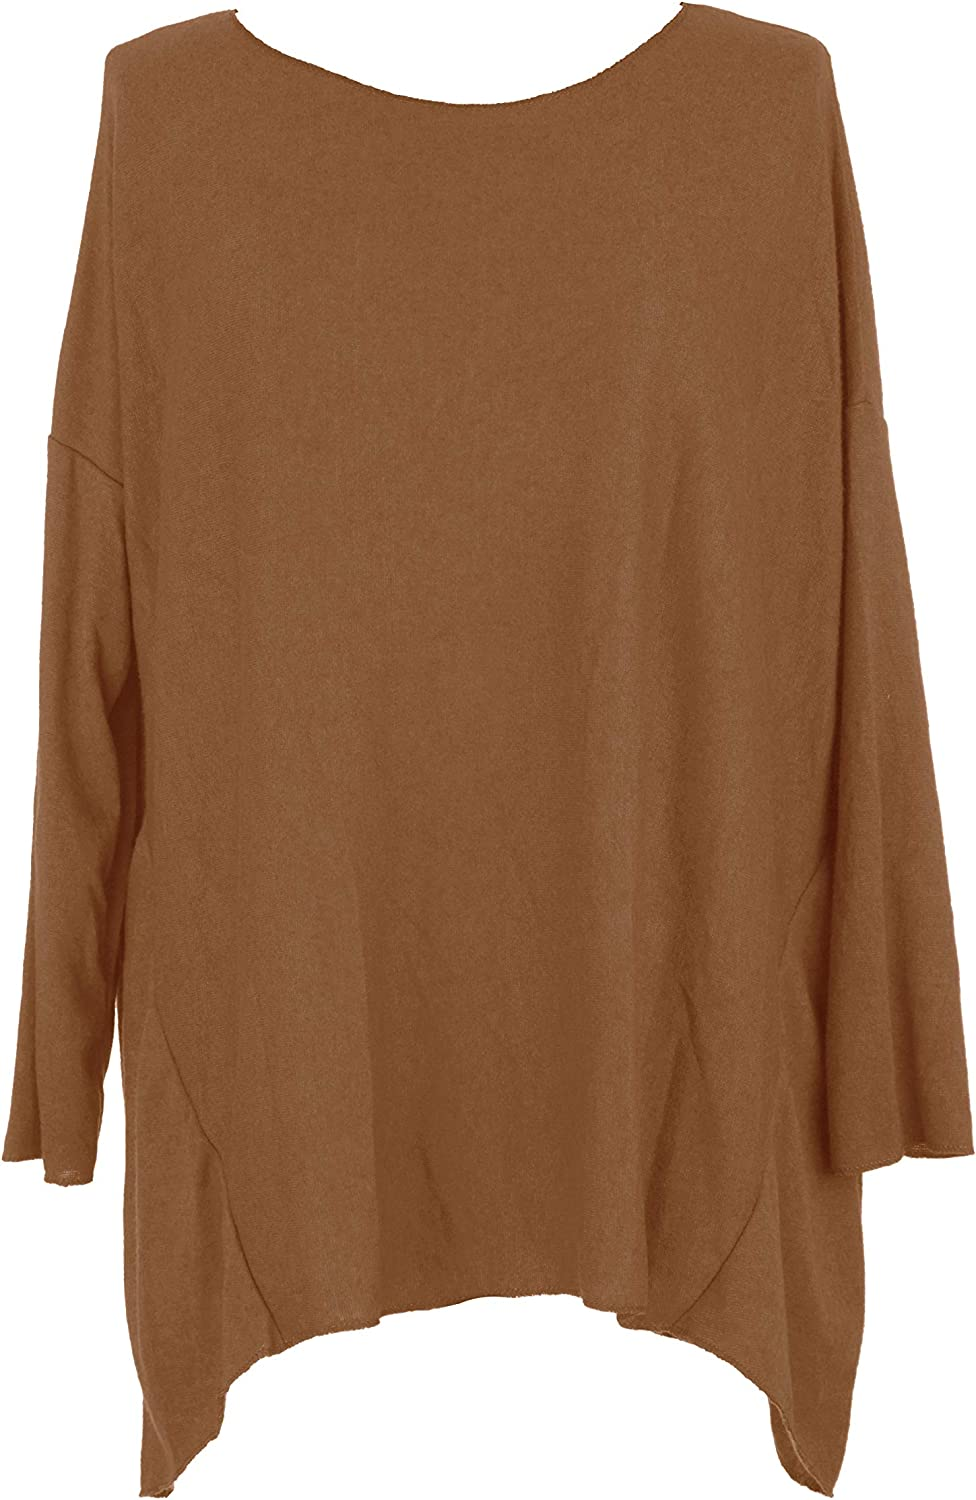 TEXTURE Ladies Womens Italian Lagenlook Long Sleeves Soft Knit Jumper Sweater Tunic Top One Size Plus